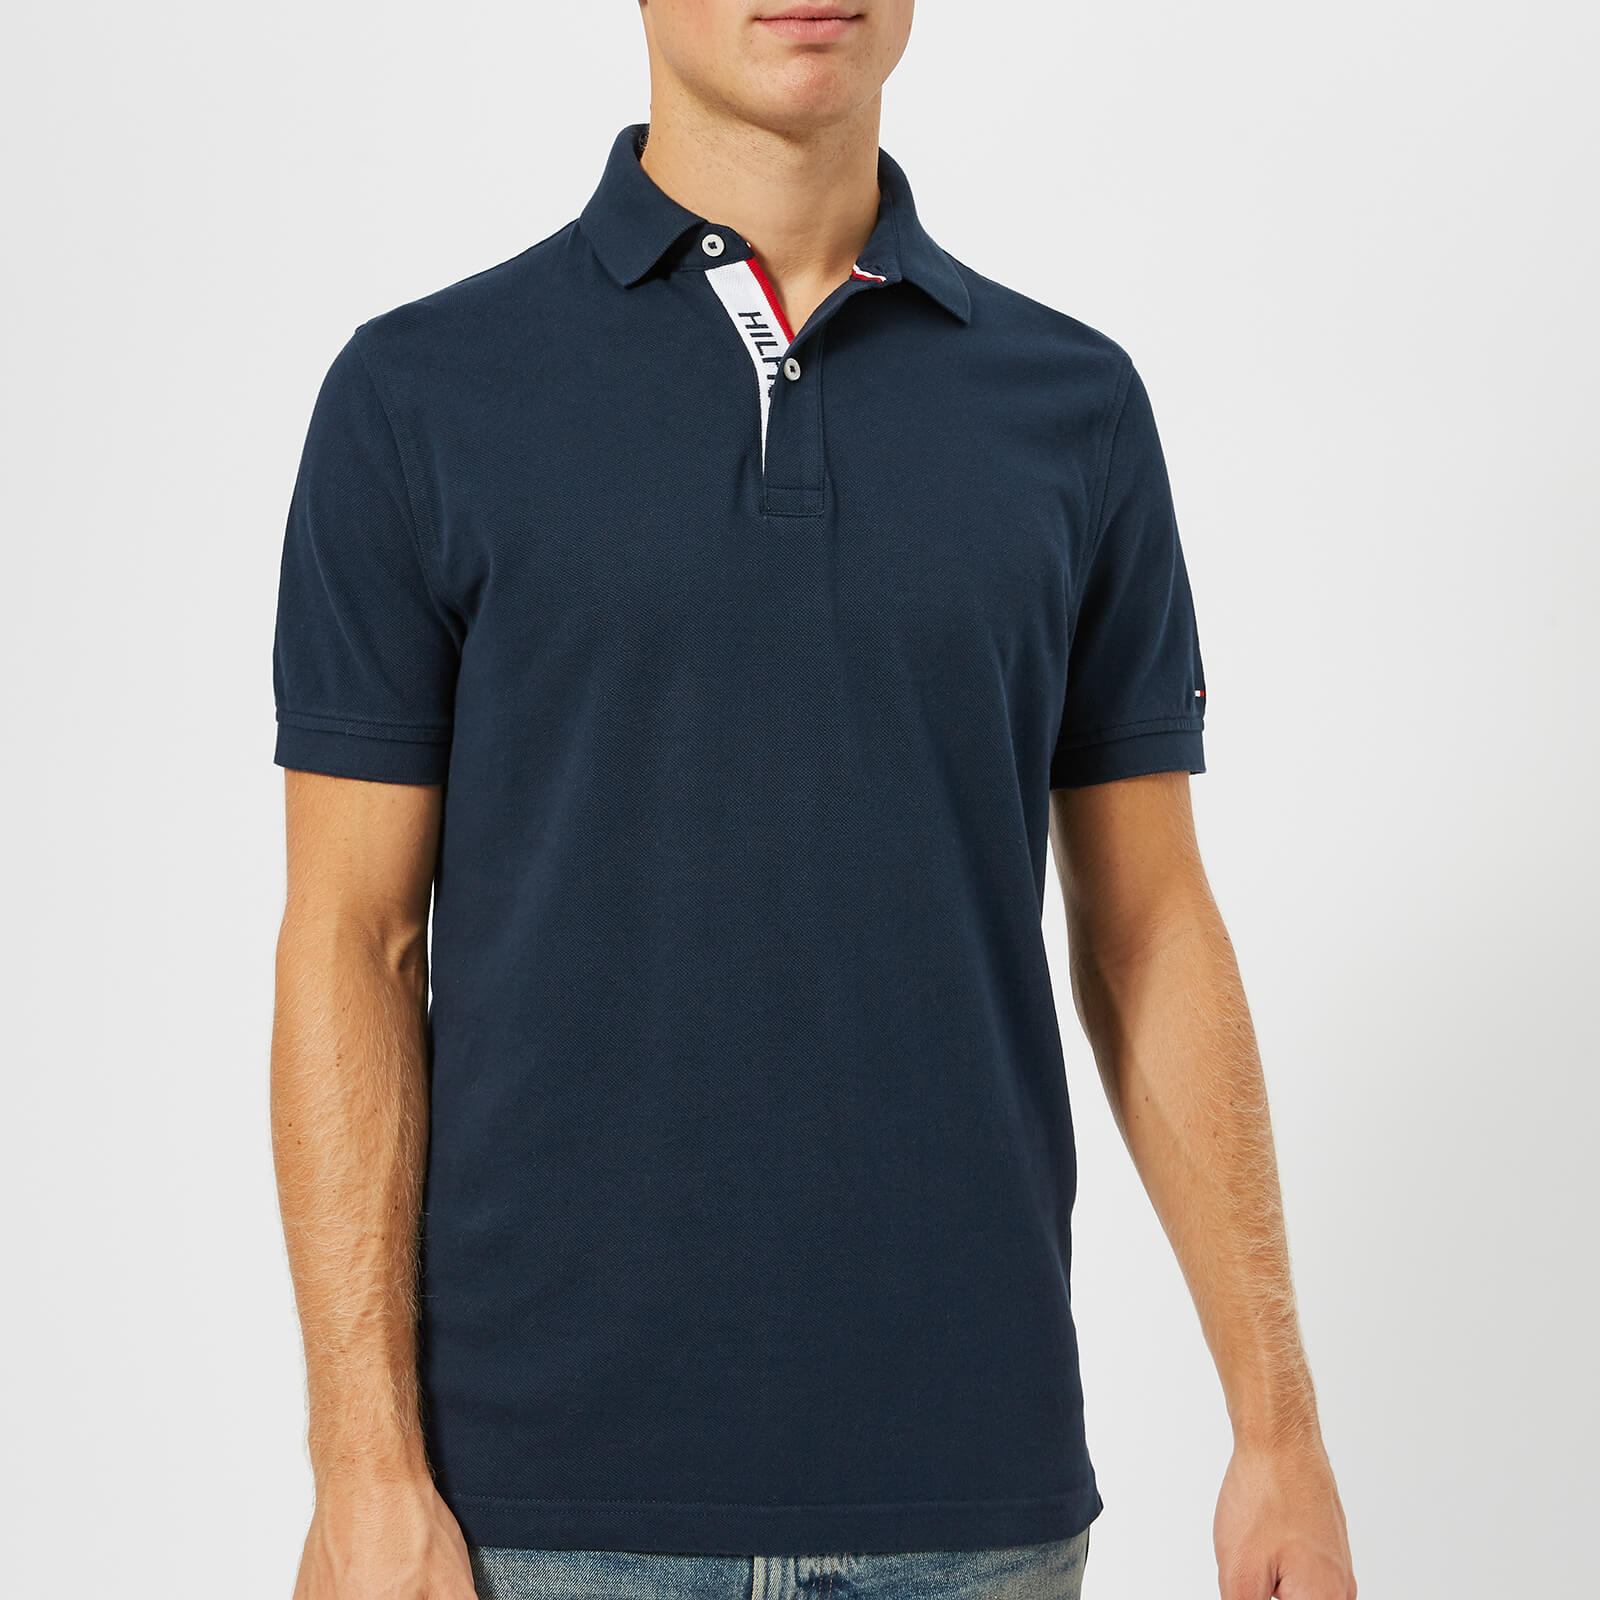 38b2cdfe3 Tommy Hilfiger Men s WCC Hilfiger Polo Shirt - Sky Captain Clothing ...